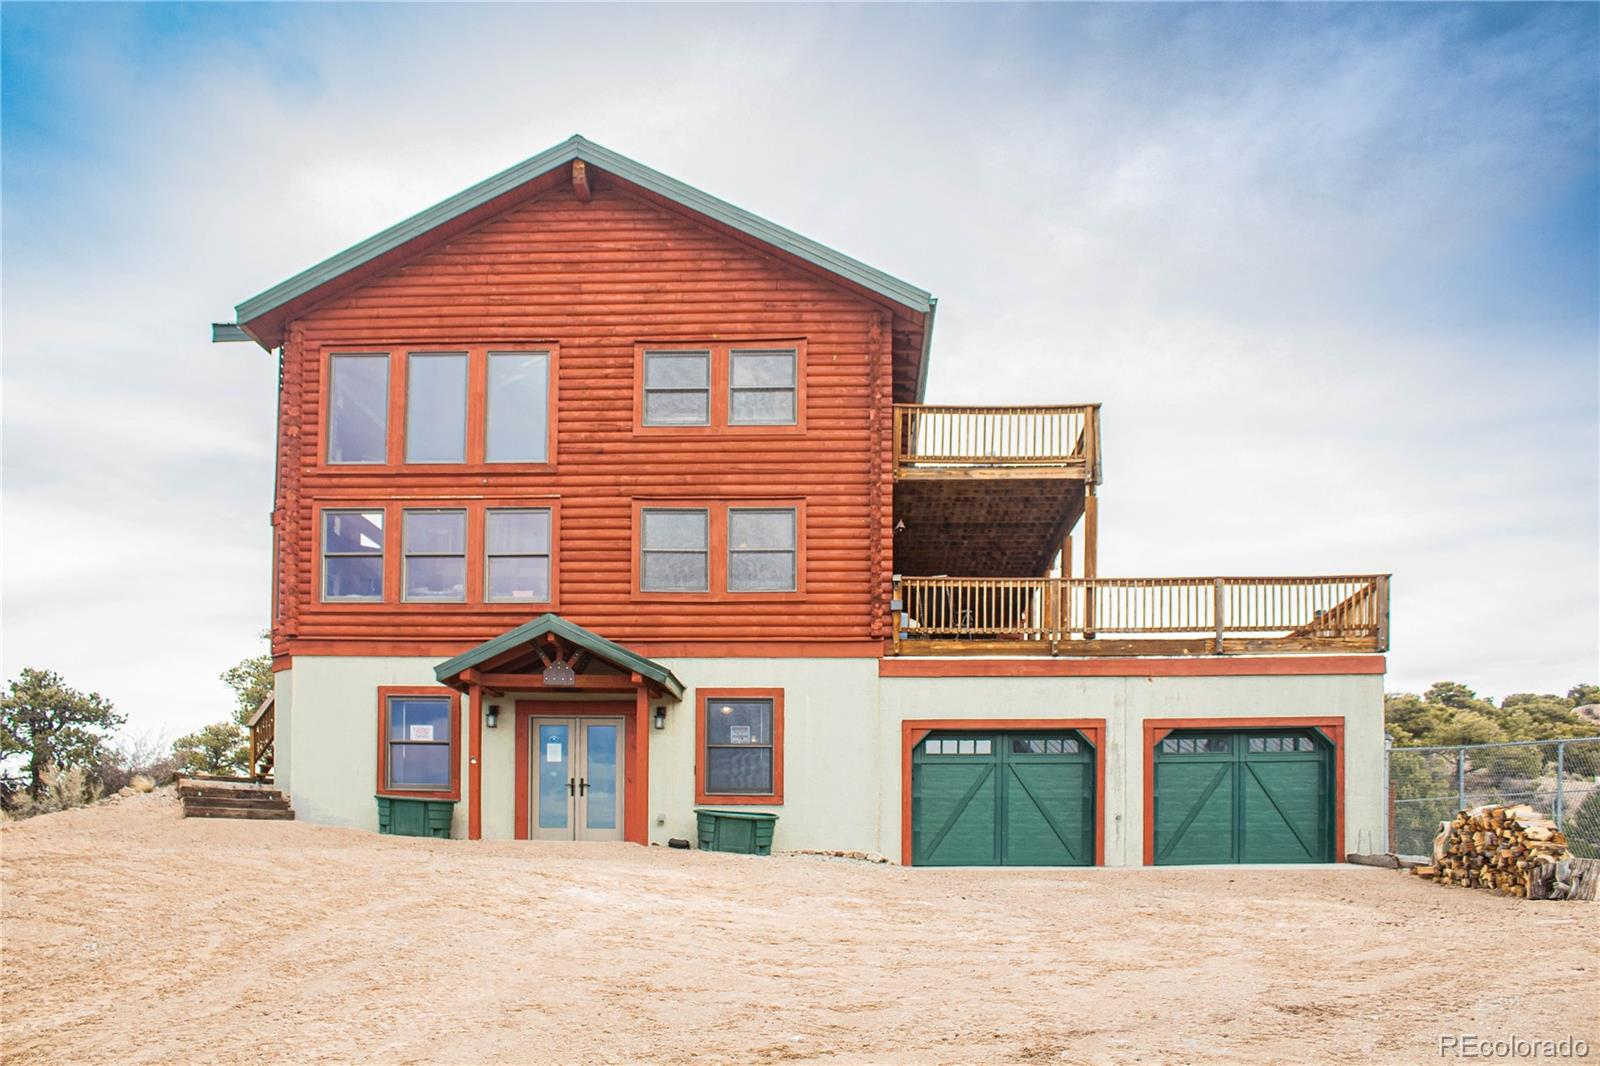 17421 Poza Rica Road, Fort Garland, CO 81133 - Fort Garland, CO real estate listing